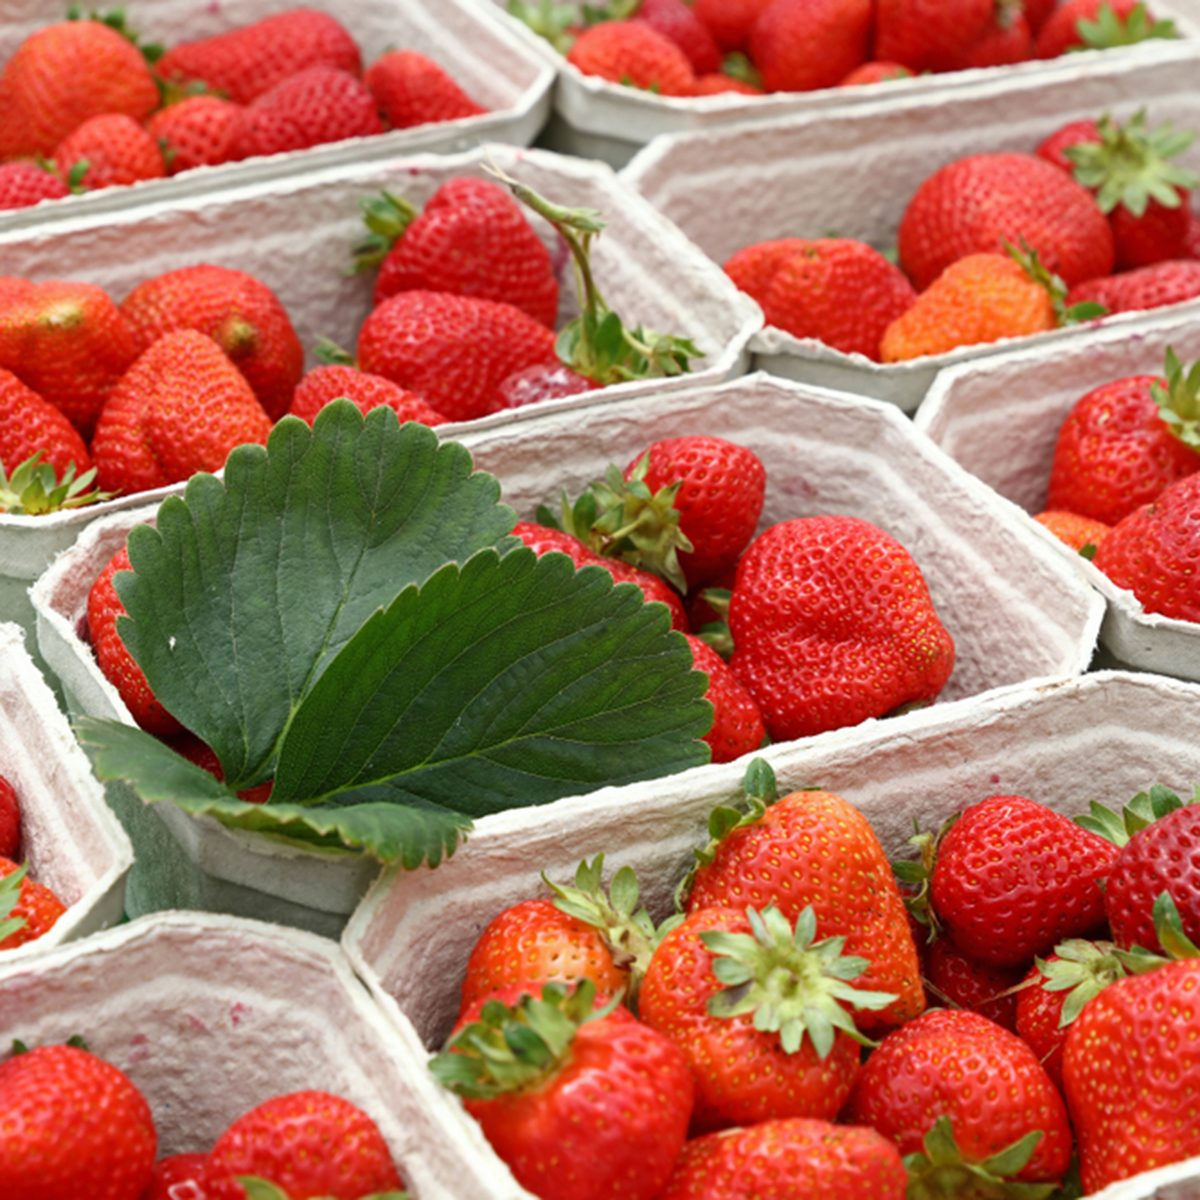 Close up red ripe fresh strawberry with green leaves in white cardboard paper crates on retail display of farmers market stall